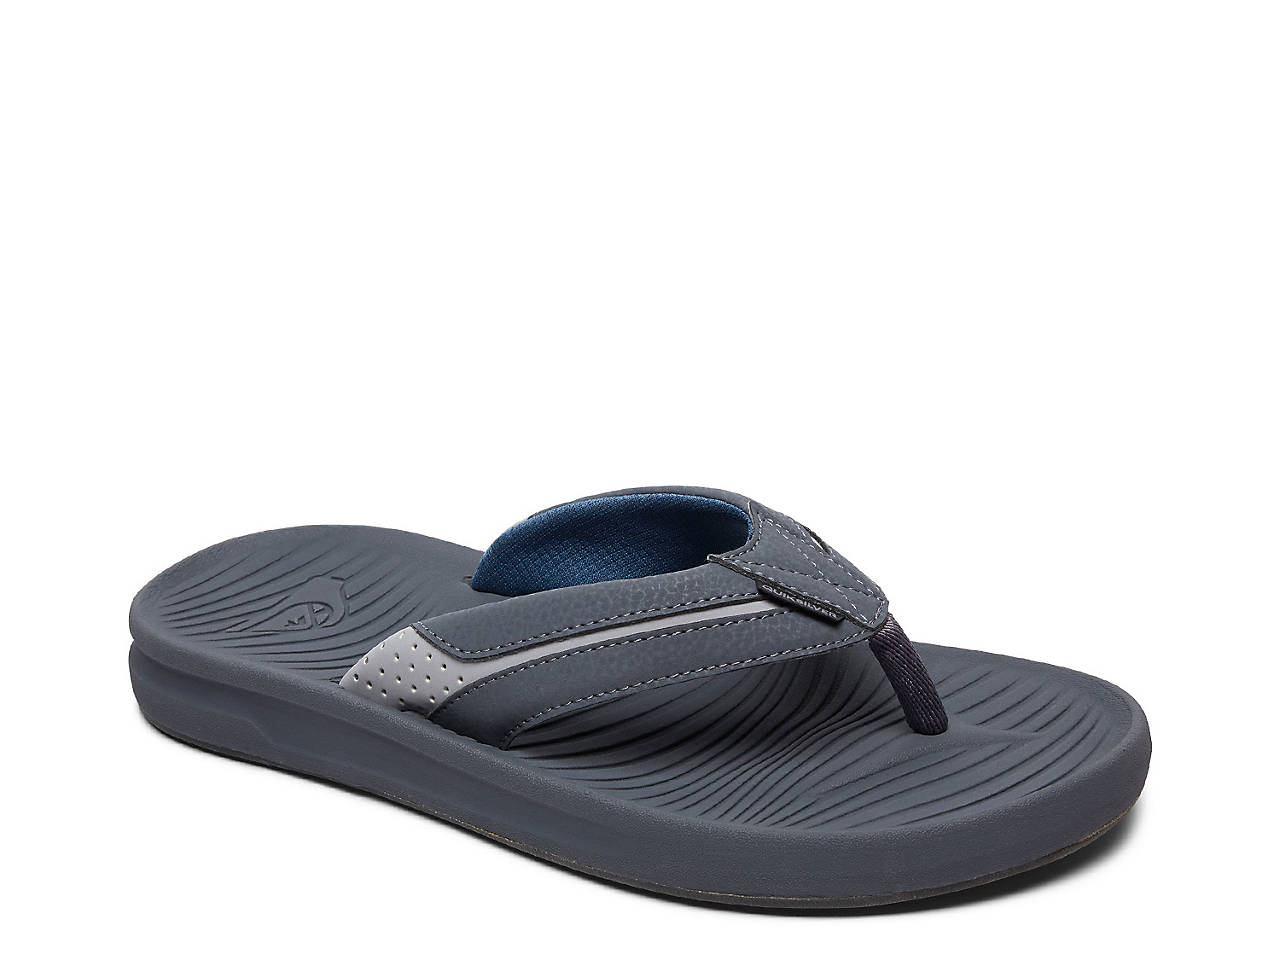 980f0eba9555 Quiksilver Travel Oasis Sandal Men s Shoes